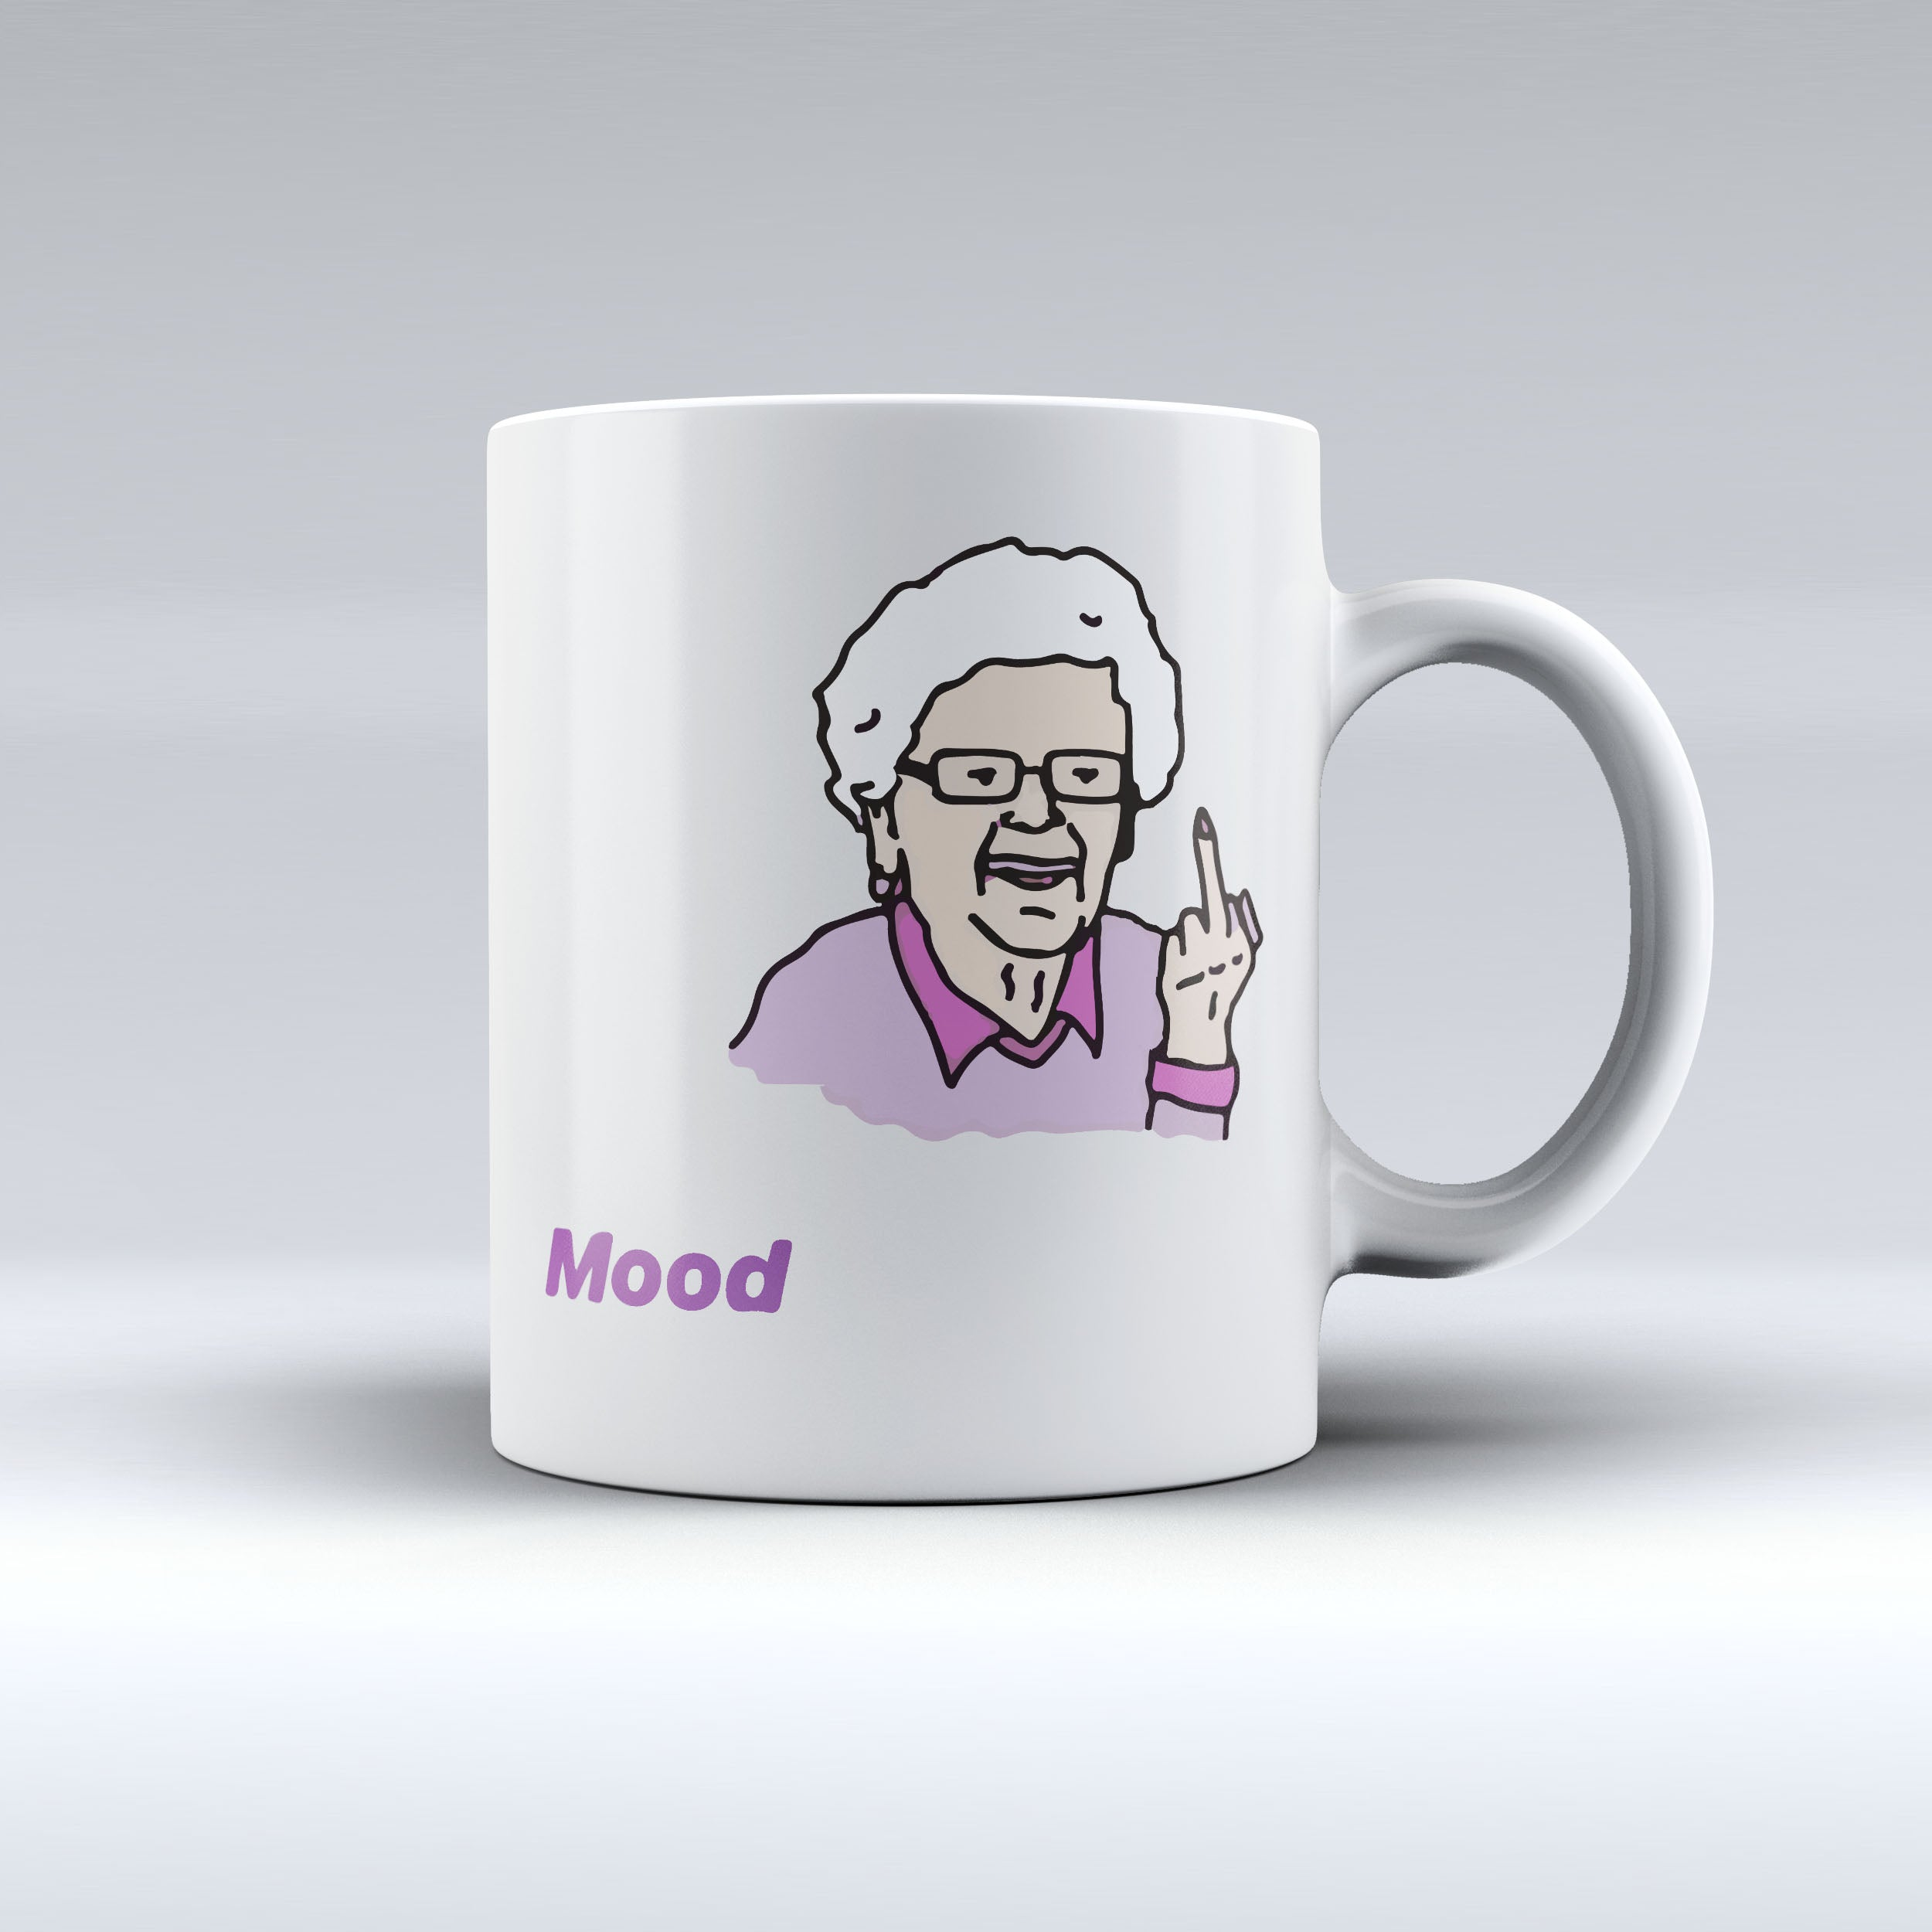 Mood Coffee Mug